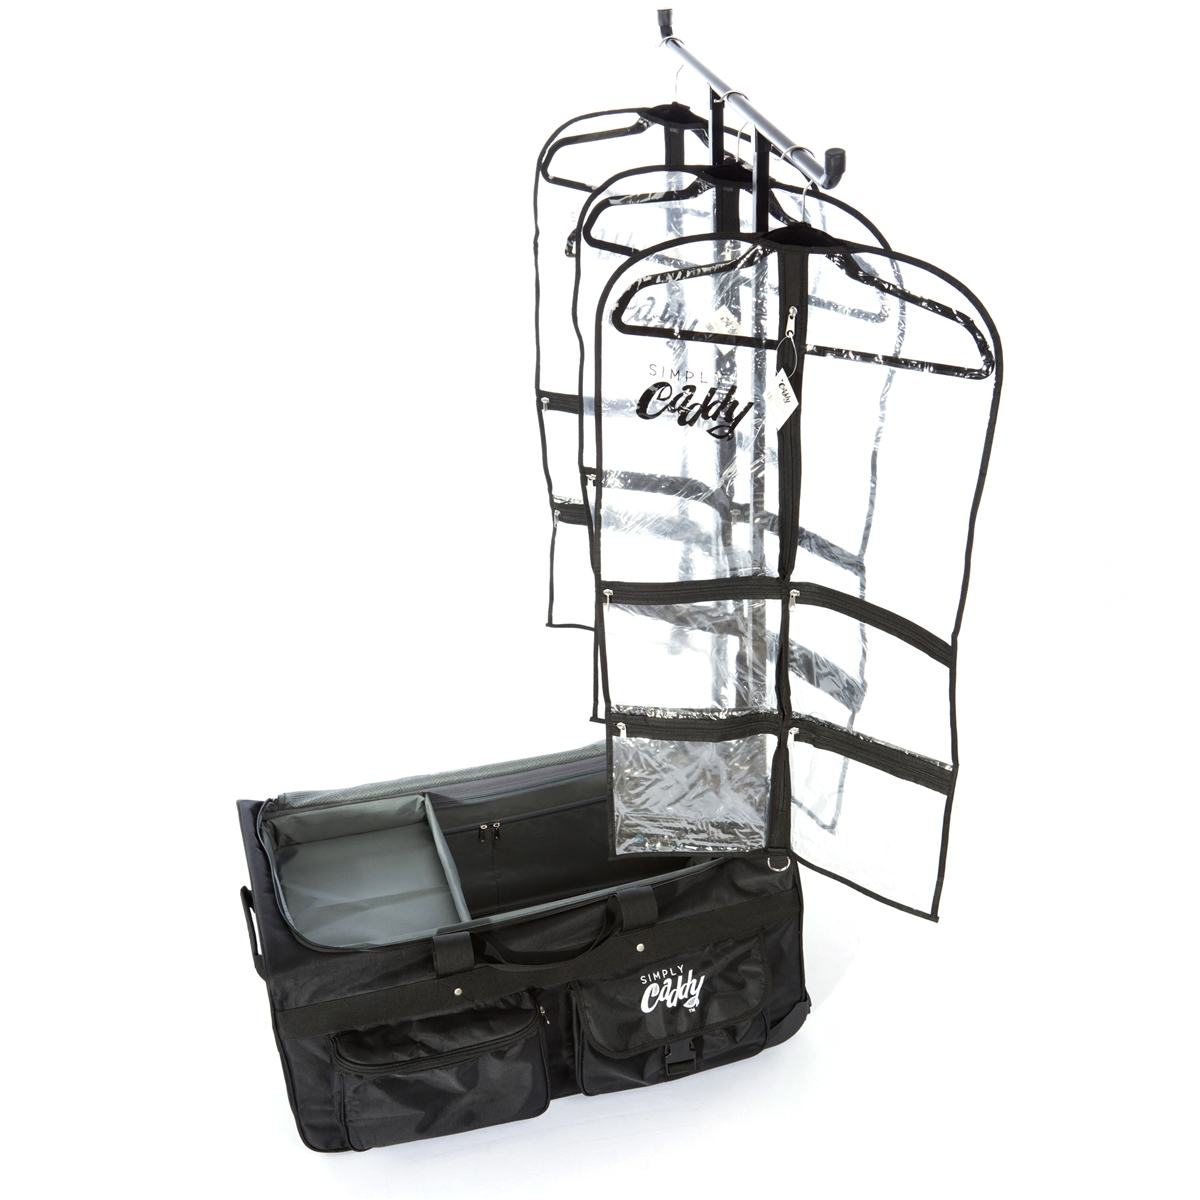 the caddy bag combo with black trim garment bags